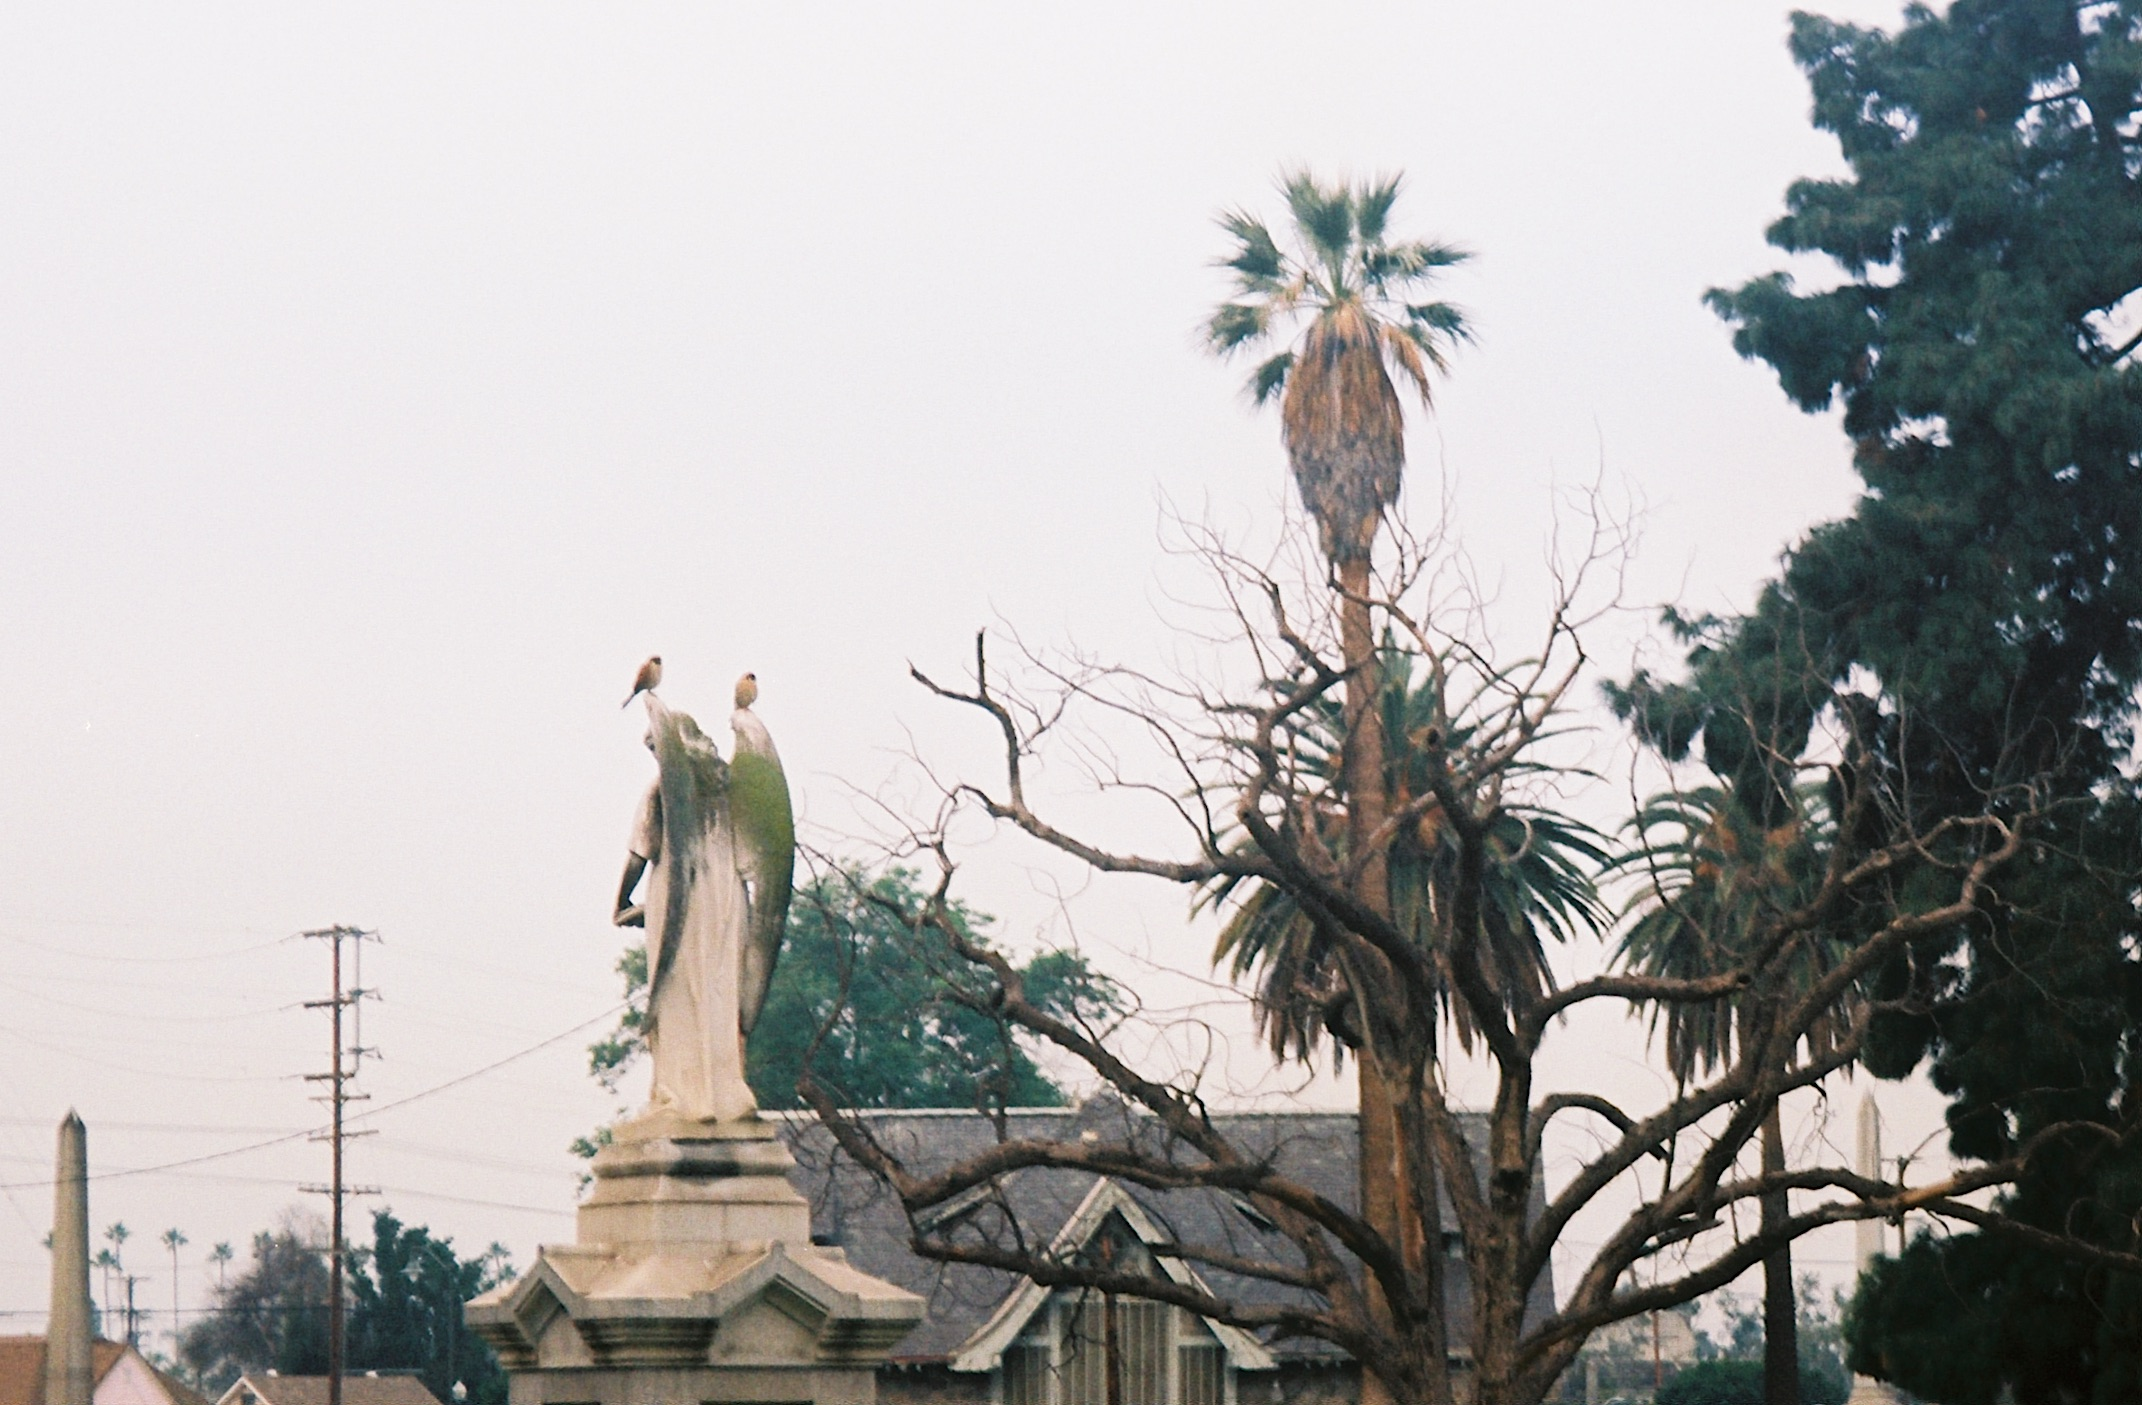 Many birds of prey also find the cemetery to be a rich hunting ground. Pictured above is a Red-tailed Hawk sitting high atop a pine tree, and two American Kestrels, the smallest and most common falcon in North America, perched together on an angel's wings.